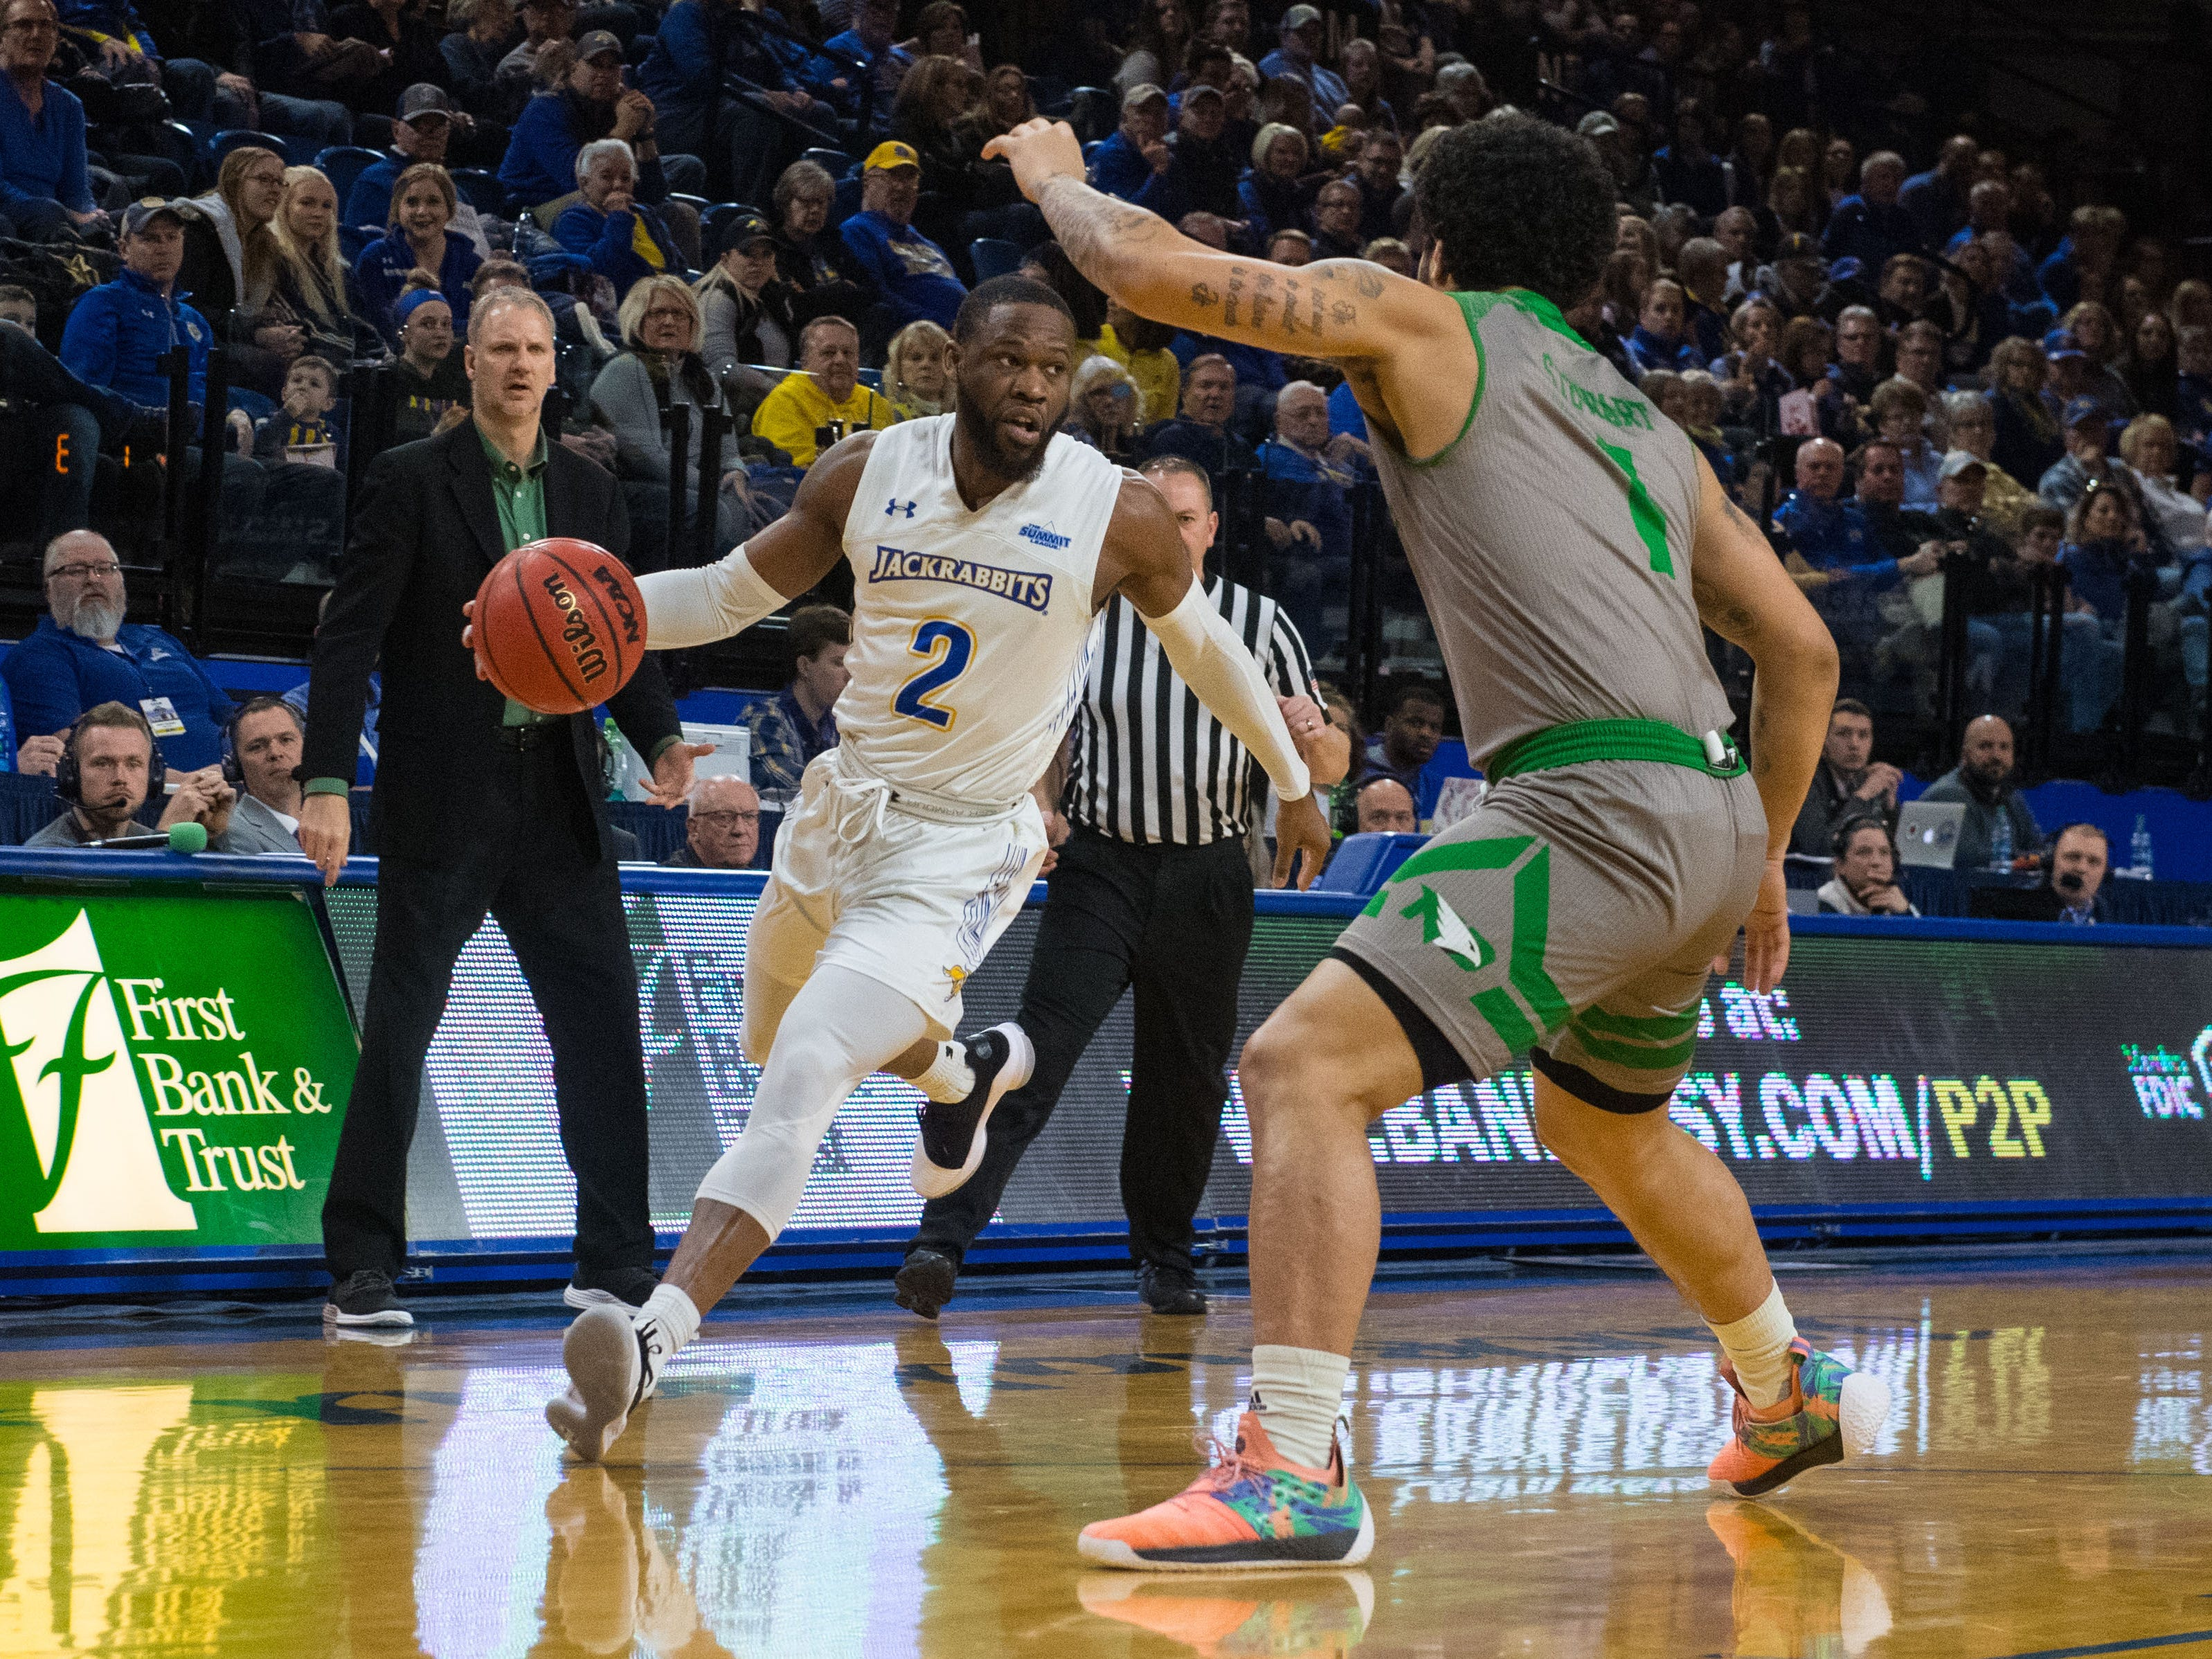 South Dakota State's Tevin King (2) dribbles the ball during a game against North Dakota in Brookings, S.D., Saturday, Feb. 9, 2019.